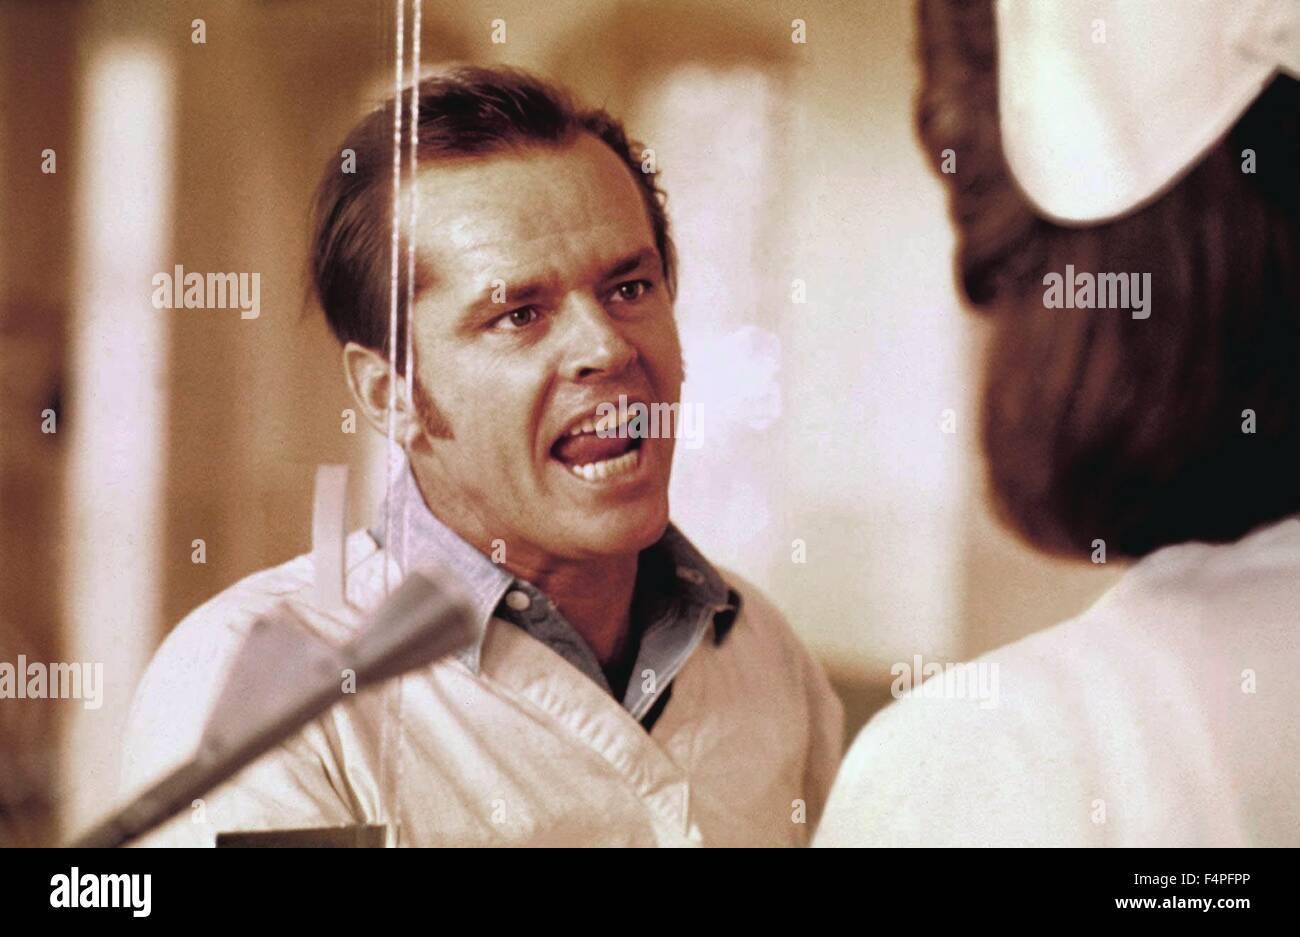 Jack Nicholson / One Flew Over the Cuckoo's Nest / 1975 directed by Milos Forman Stock Photo